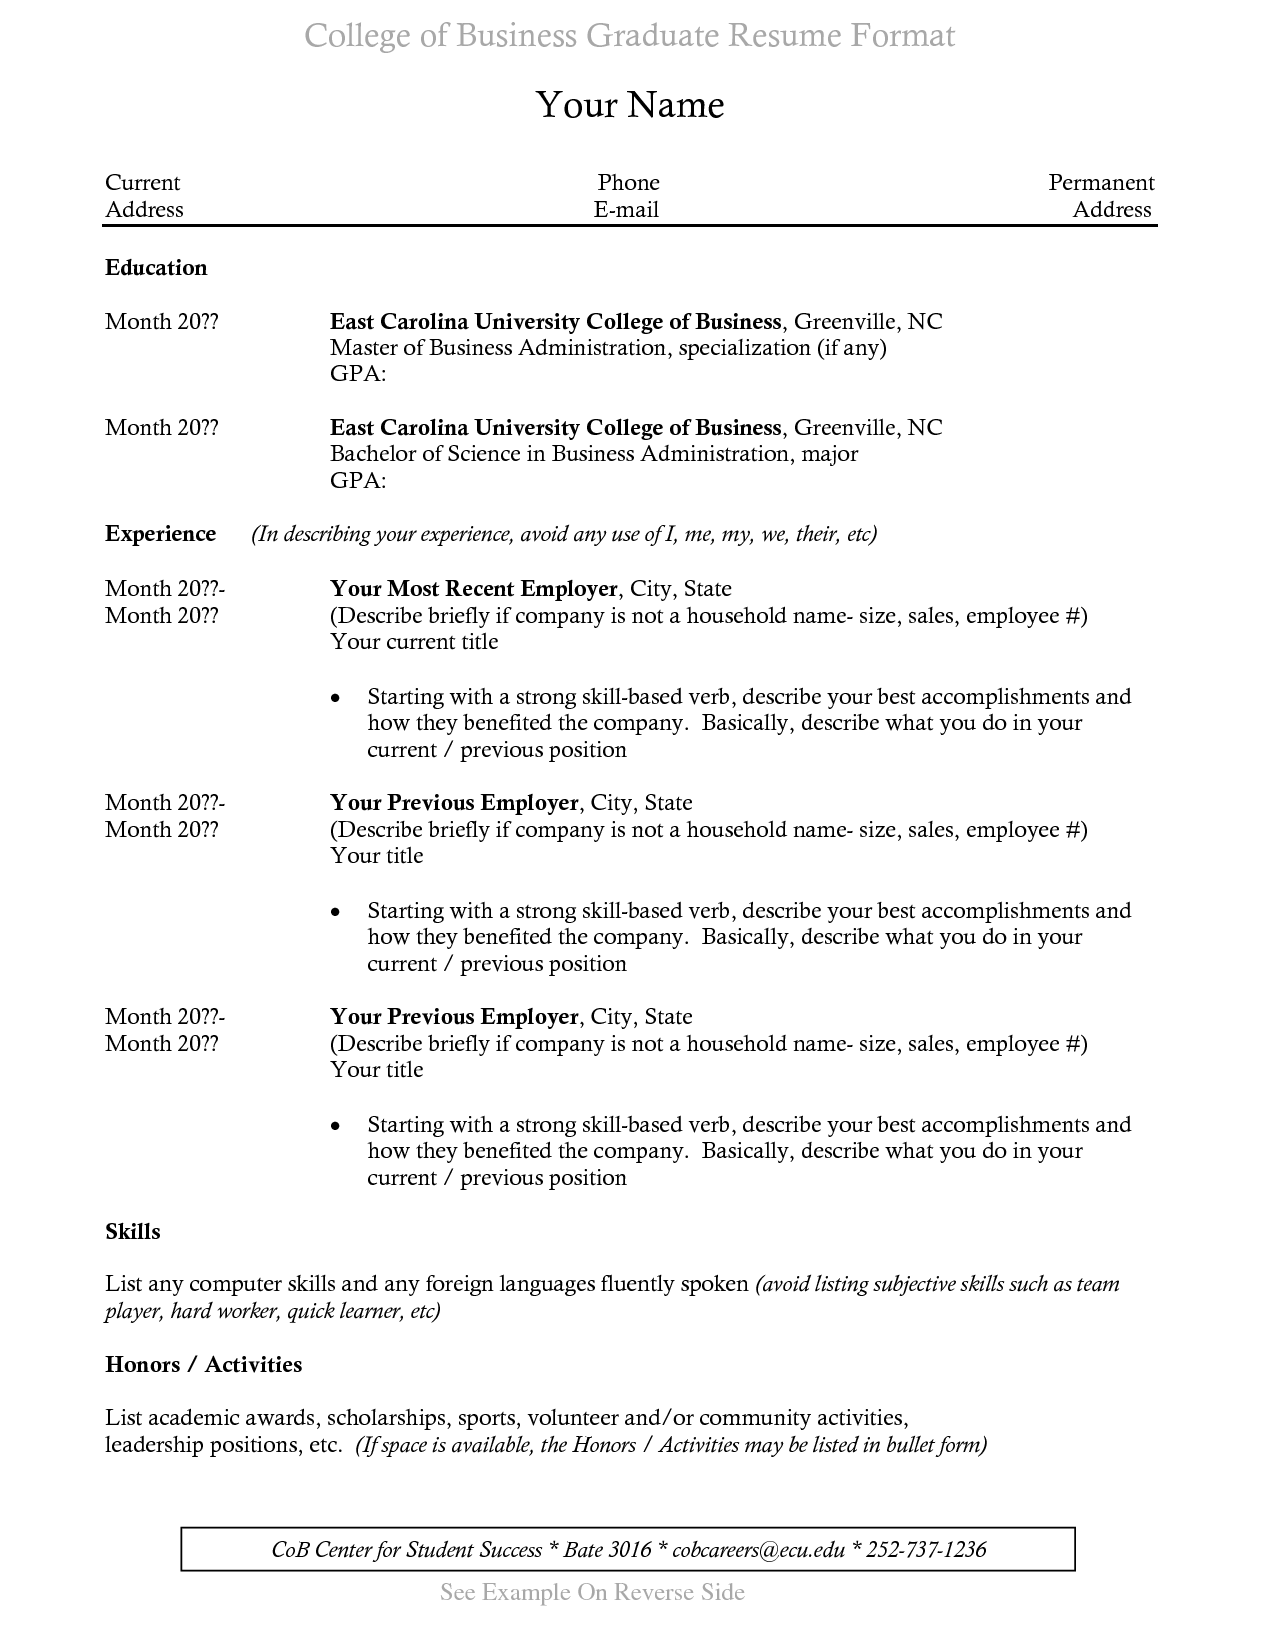 Resumes For College Graduates Mesmerizing Recent College Graduate  Resume Templates  Pinterest  College And .